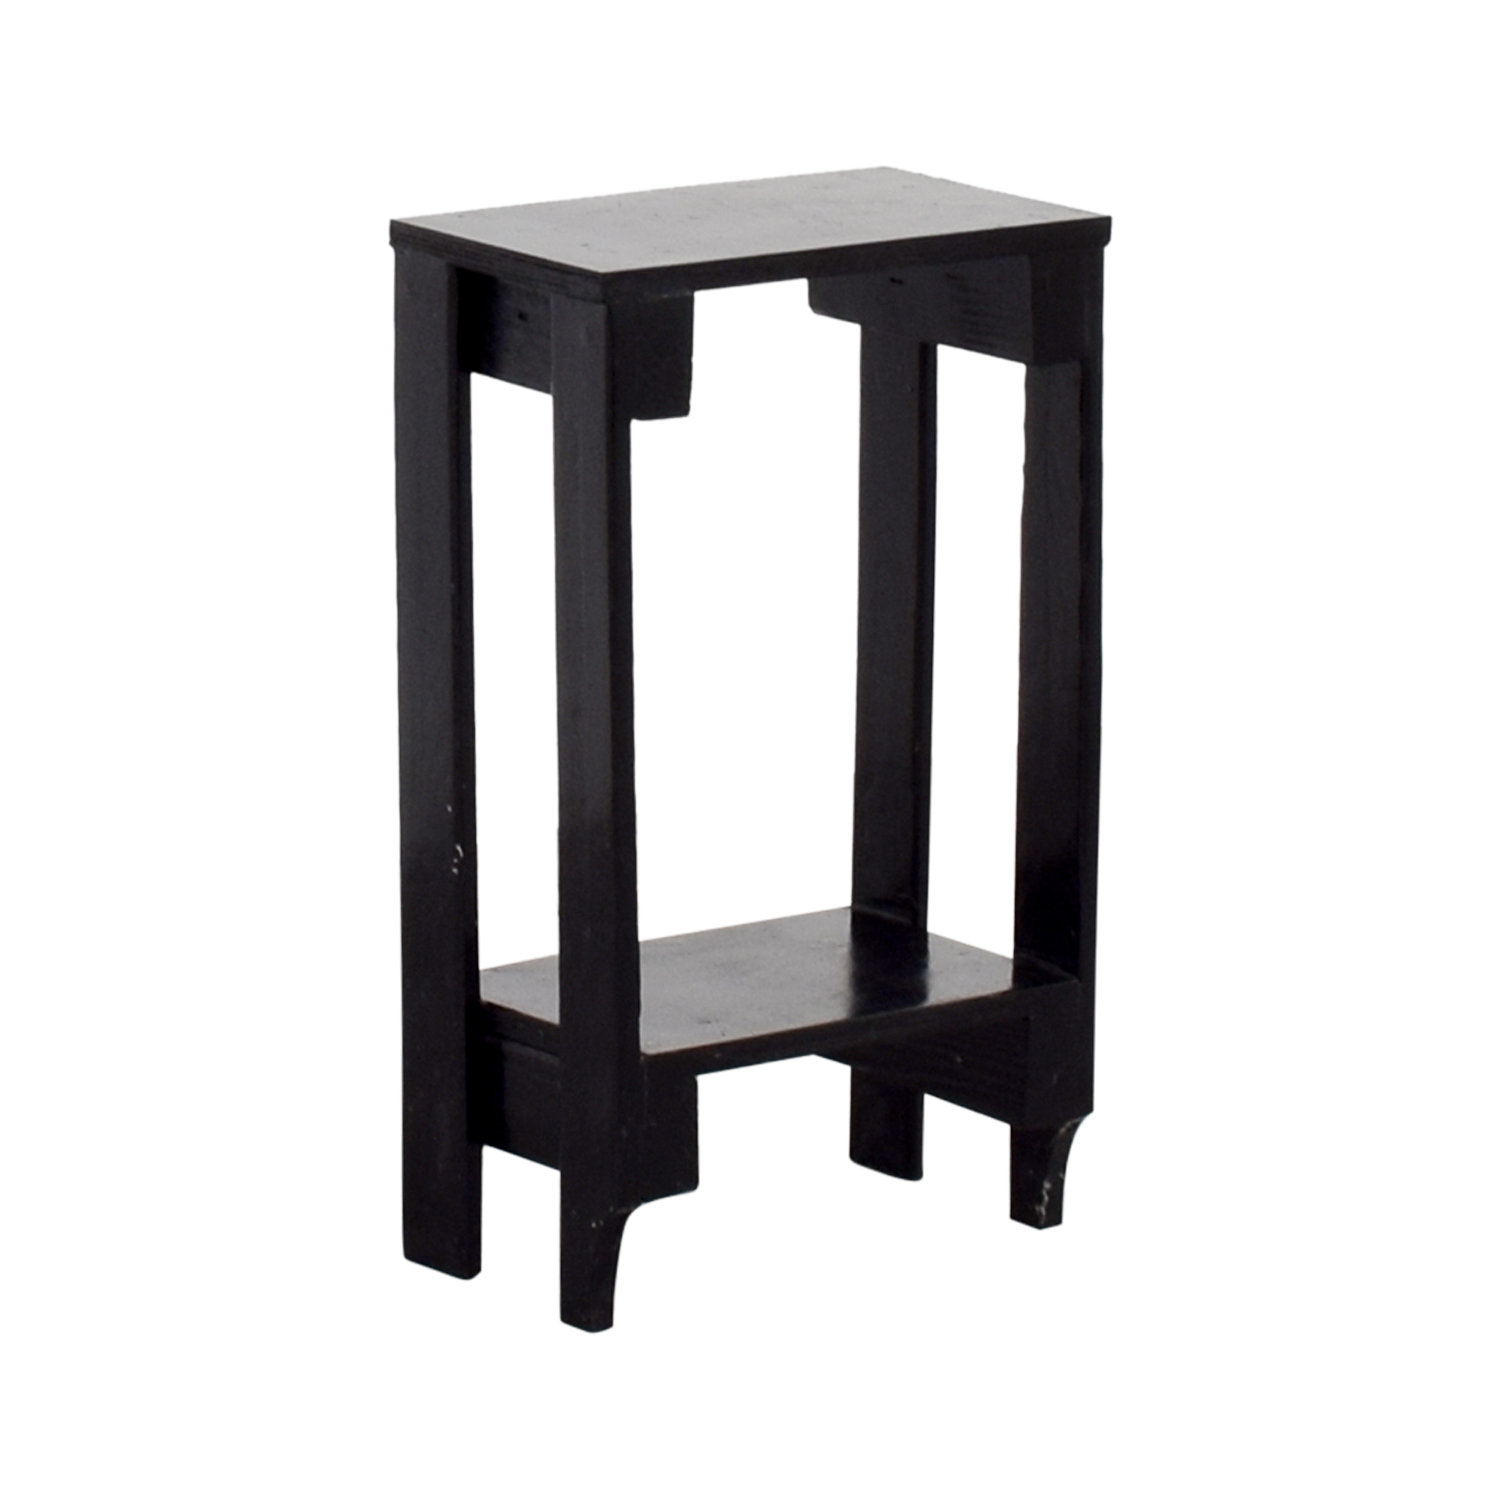 Small Black Table with Bottom Shelf discount